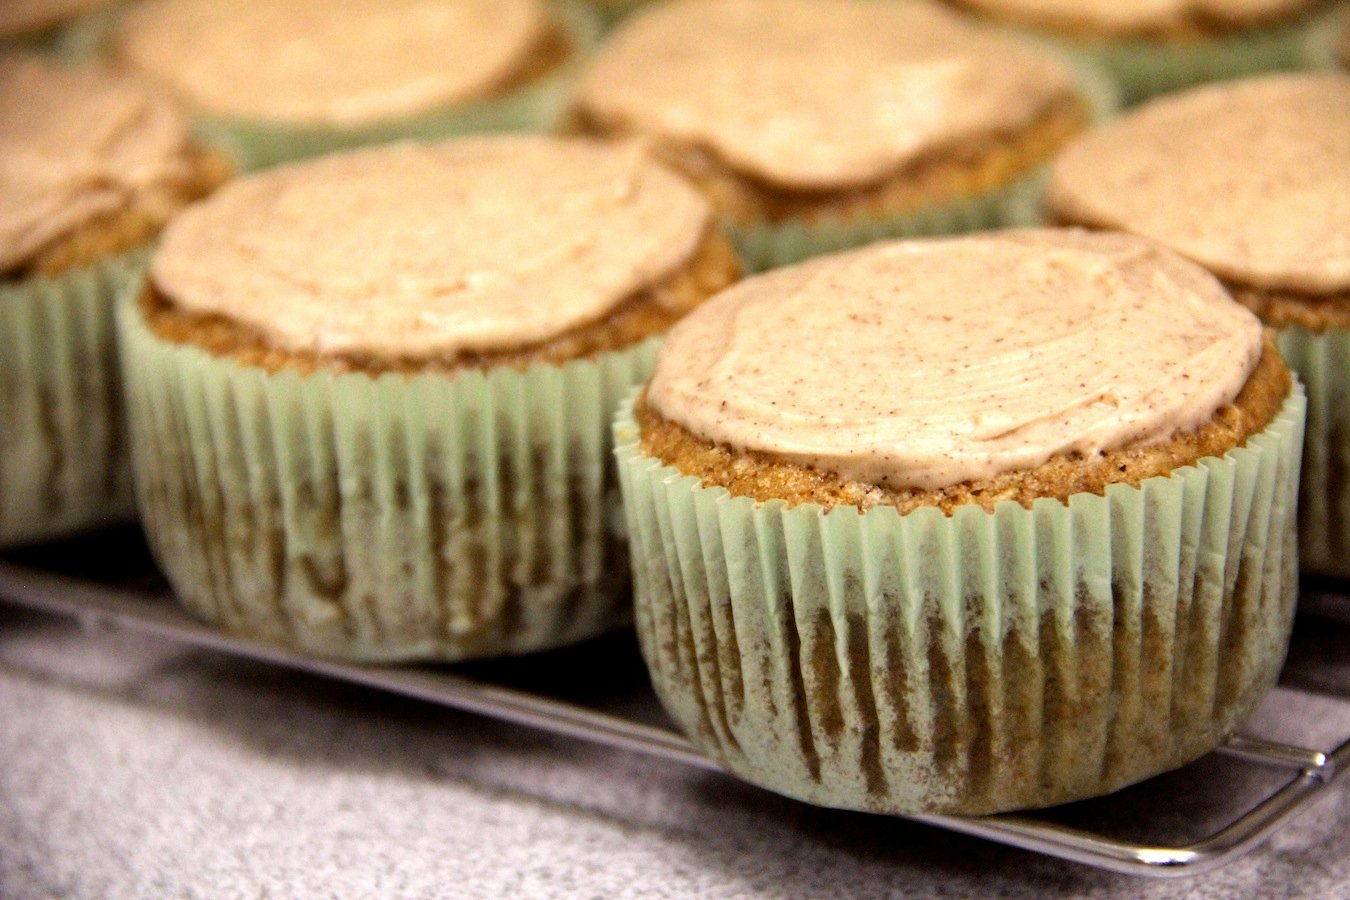 apple cupcakes with cinnamon frosting